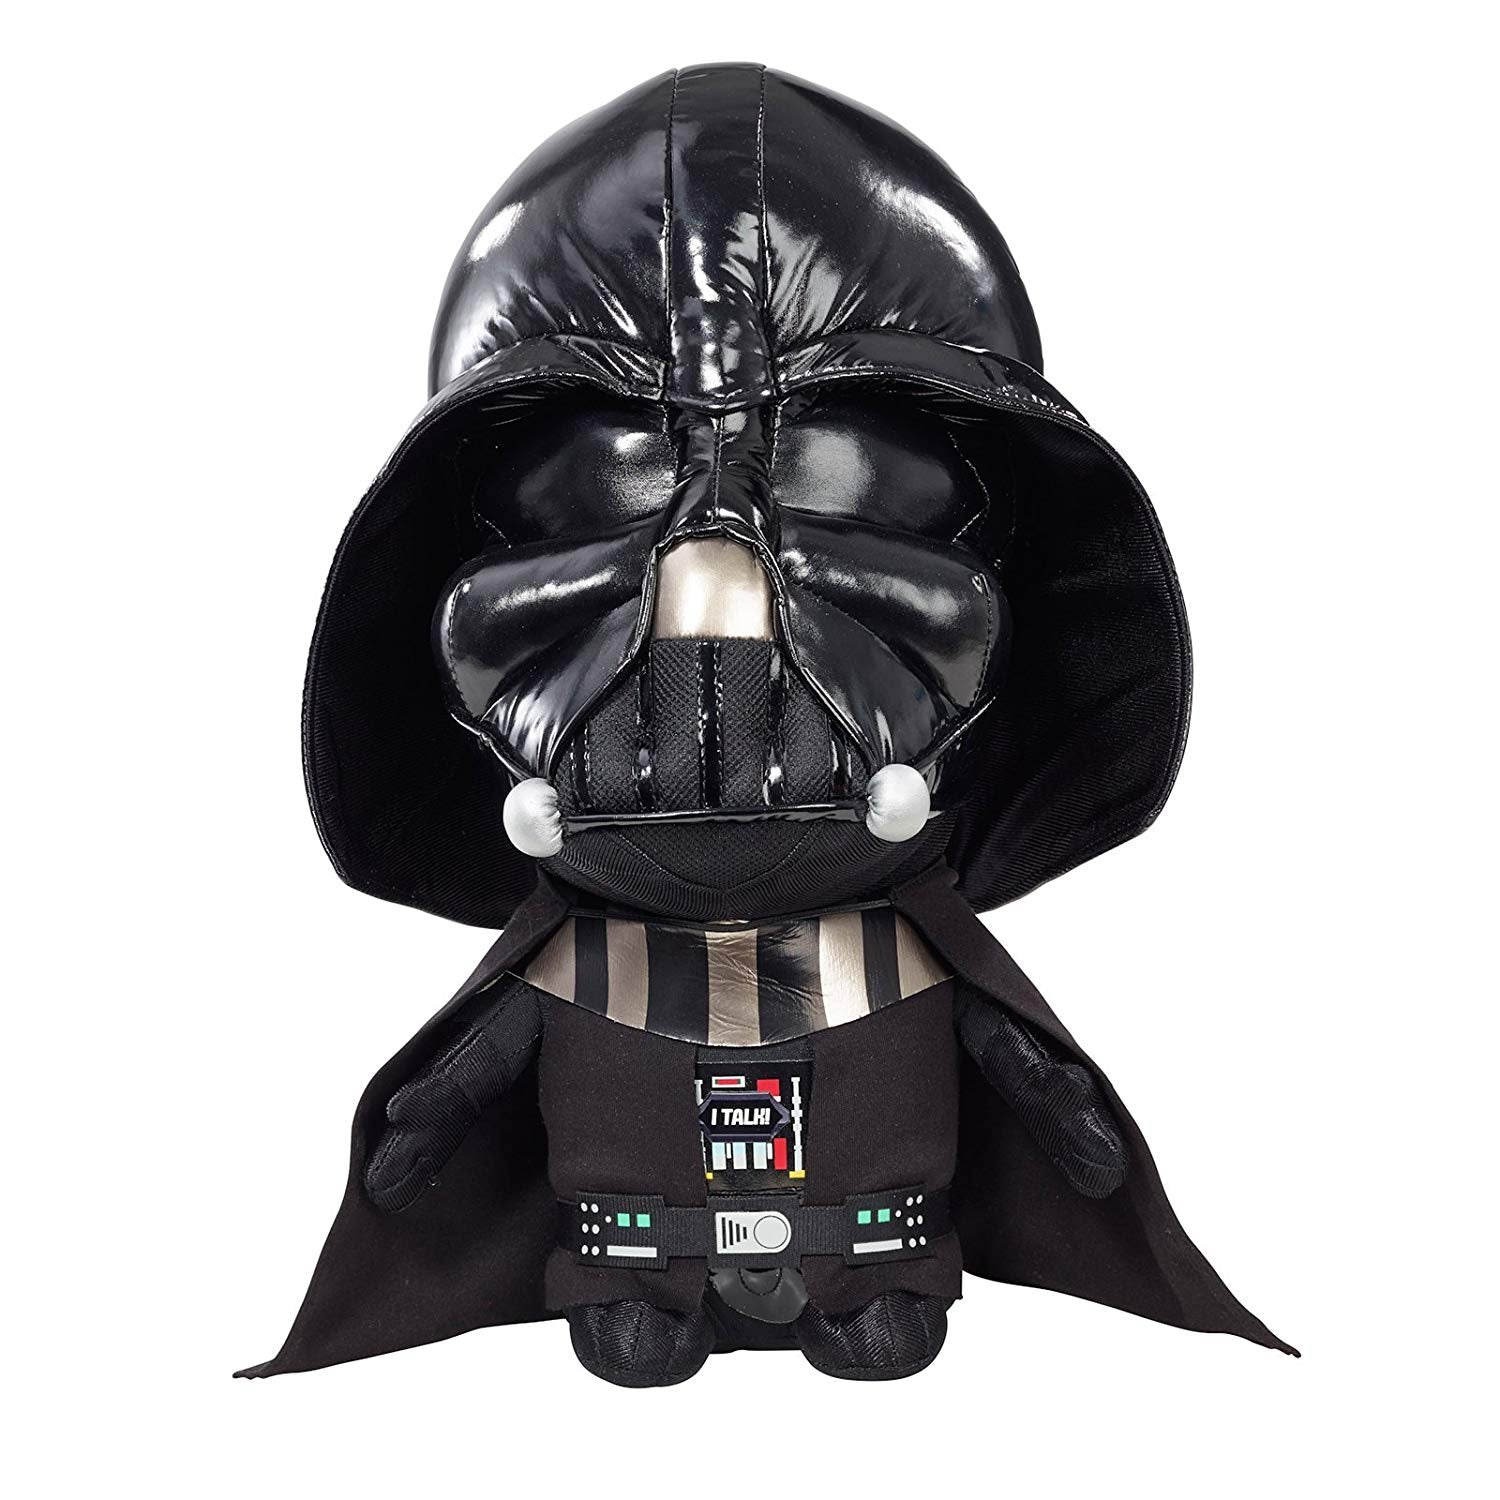 Star Wars Talking Darth Vader Plush by Underground Toys -Underground Toys - India - www.superherotoystore.com